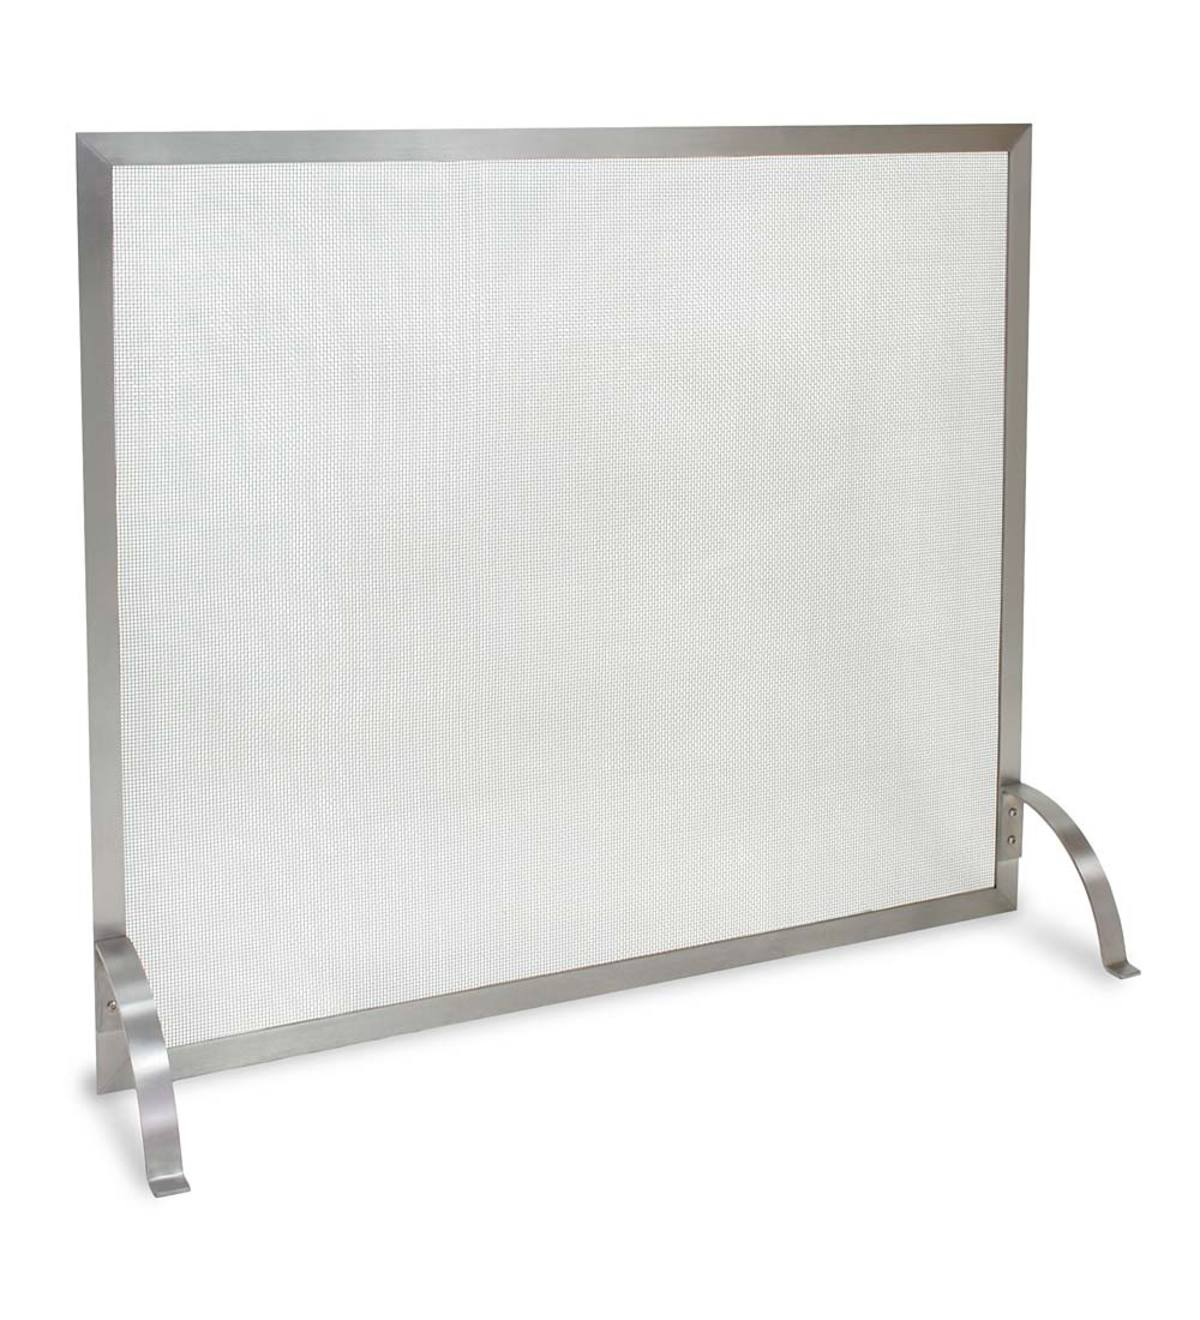 Stainless Steel Newport Single-Panel Fireplace Screen